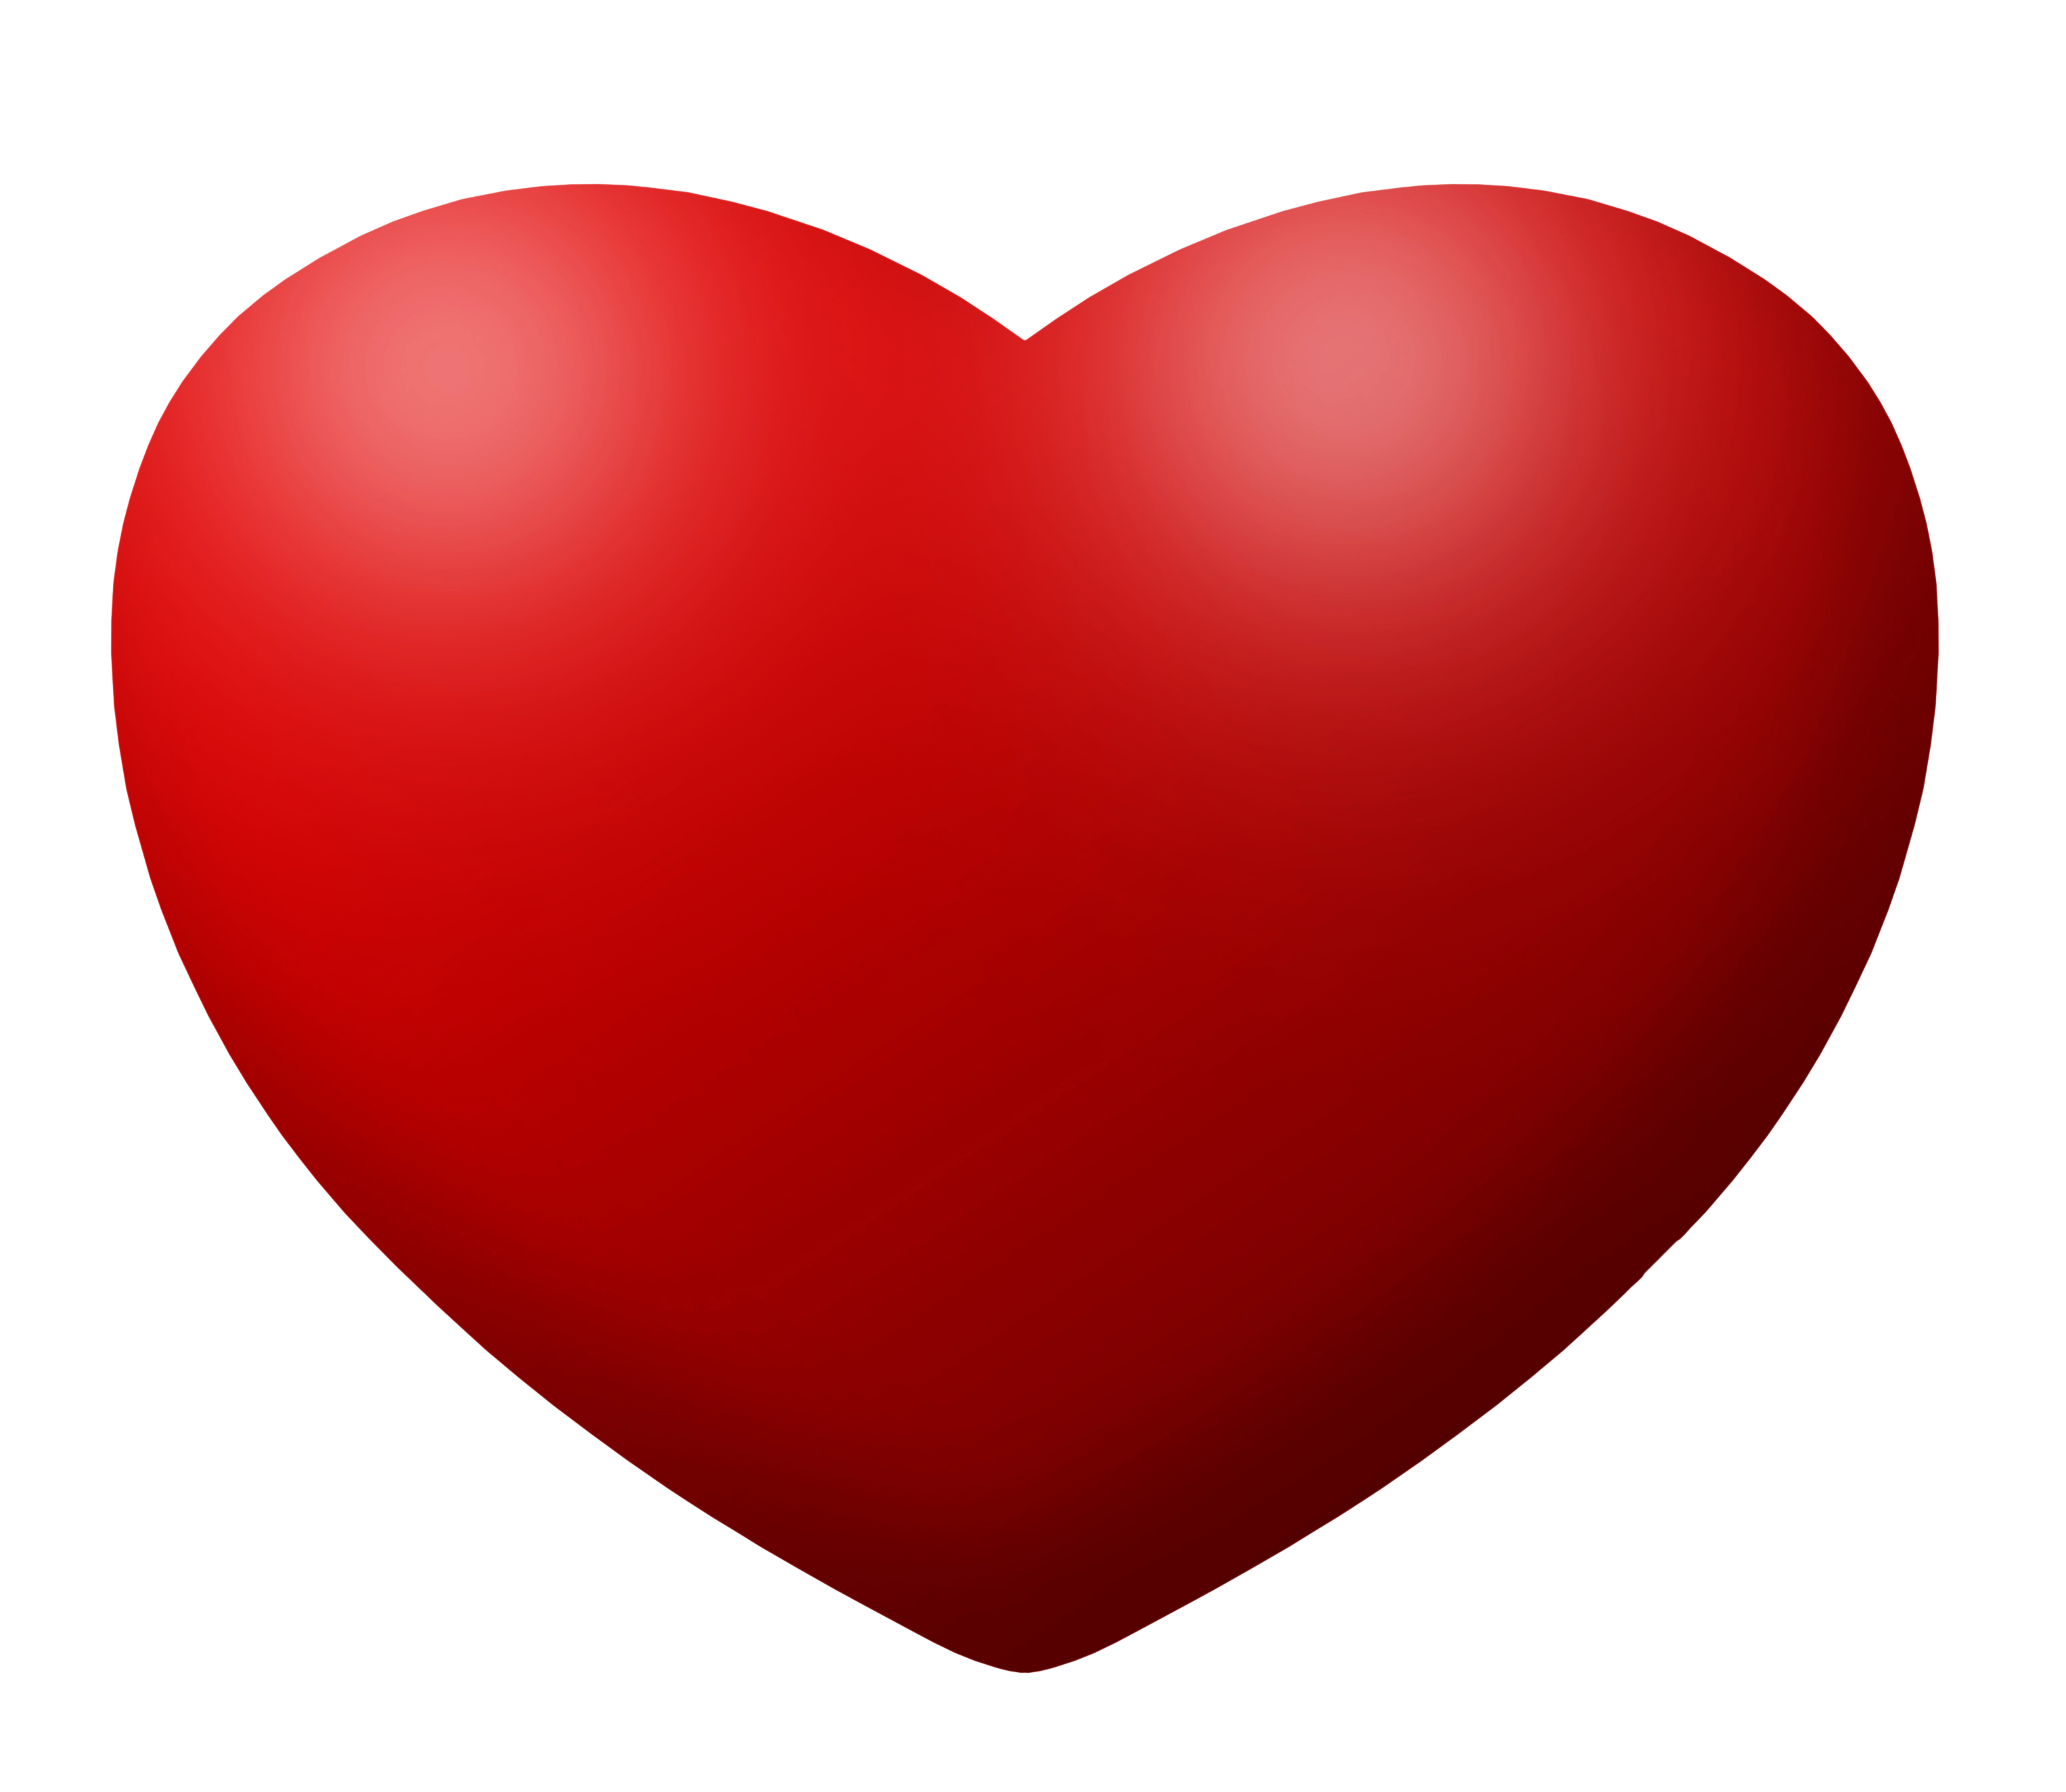 Transparent pictures free icons. 3d heart png vector royalty free download